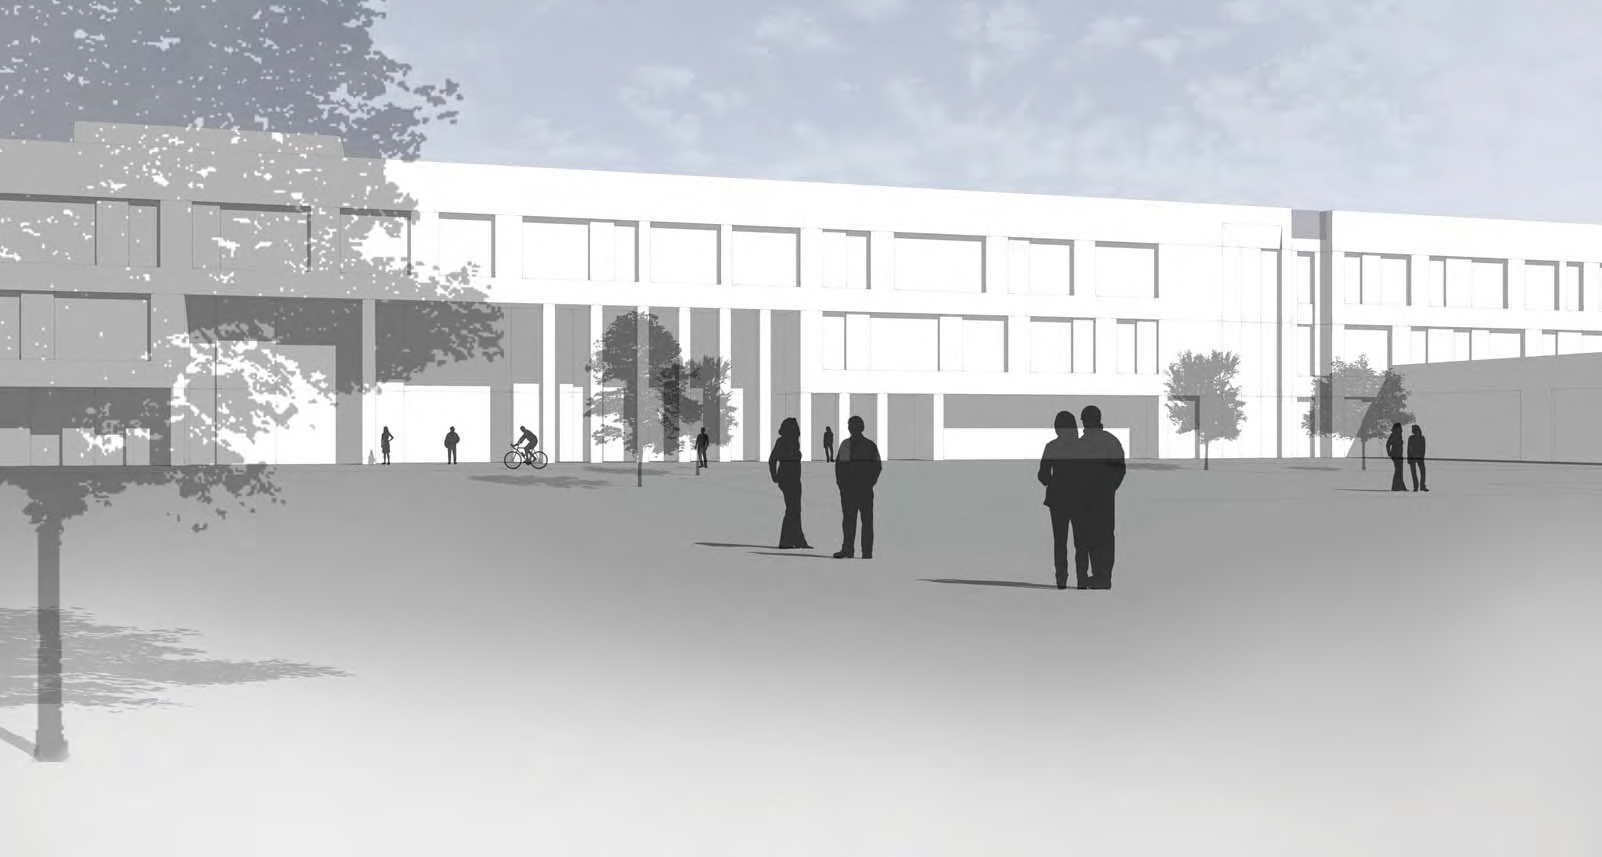 An artist's impression of how  the South of Aberdeen High School could look.